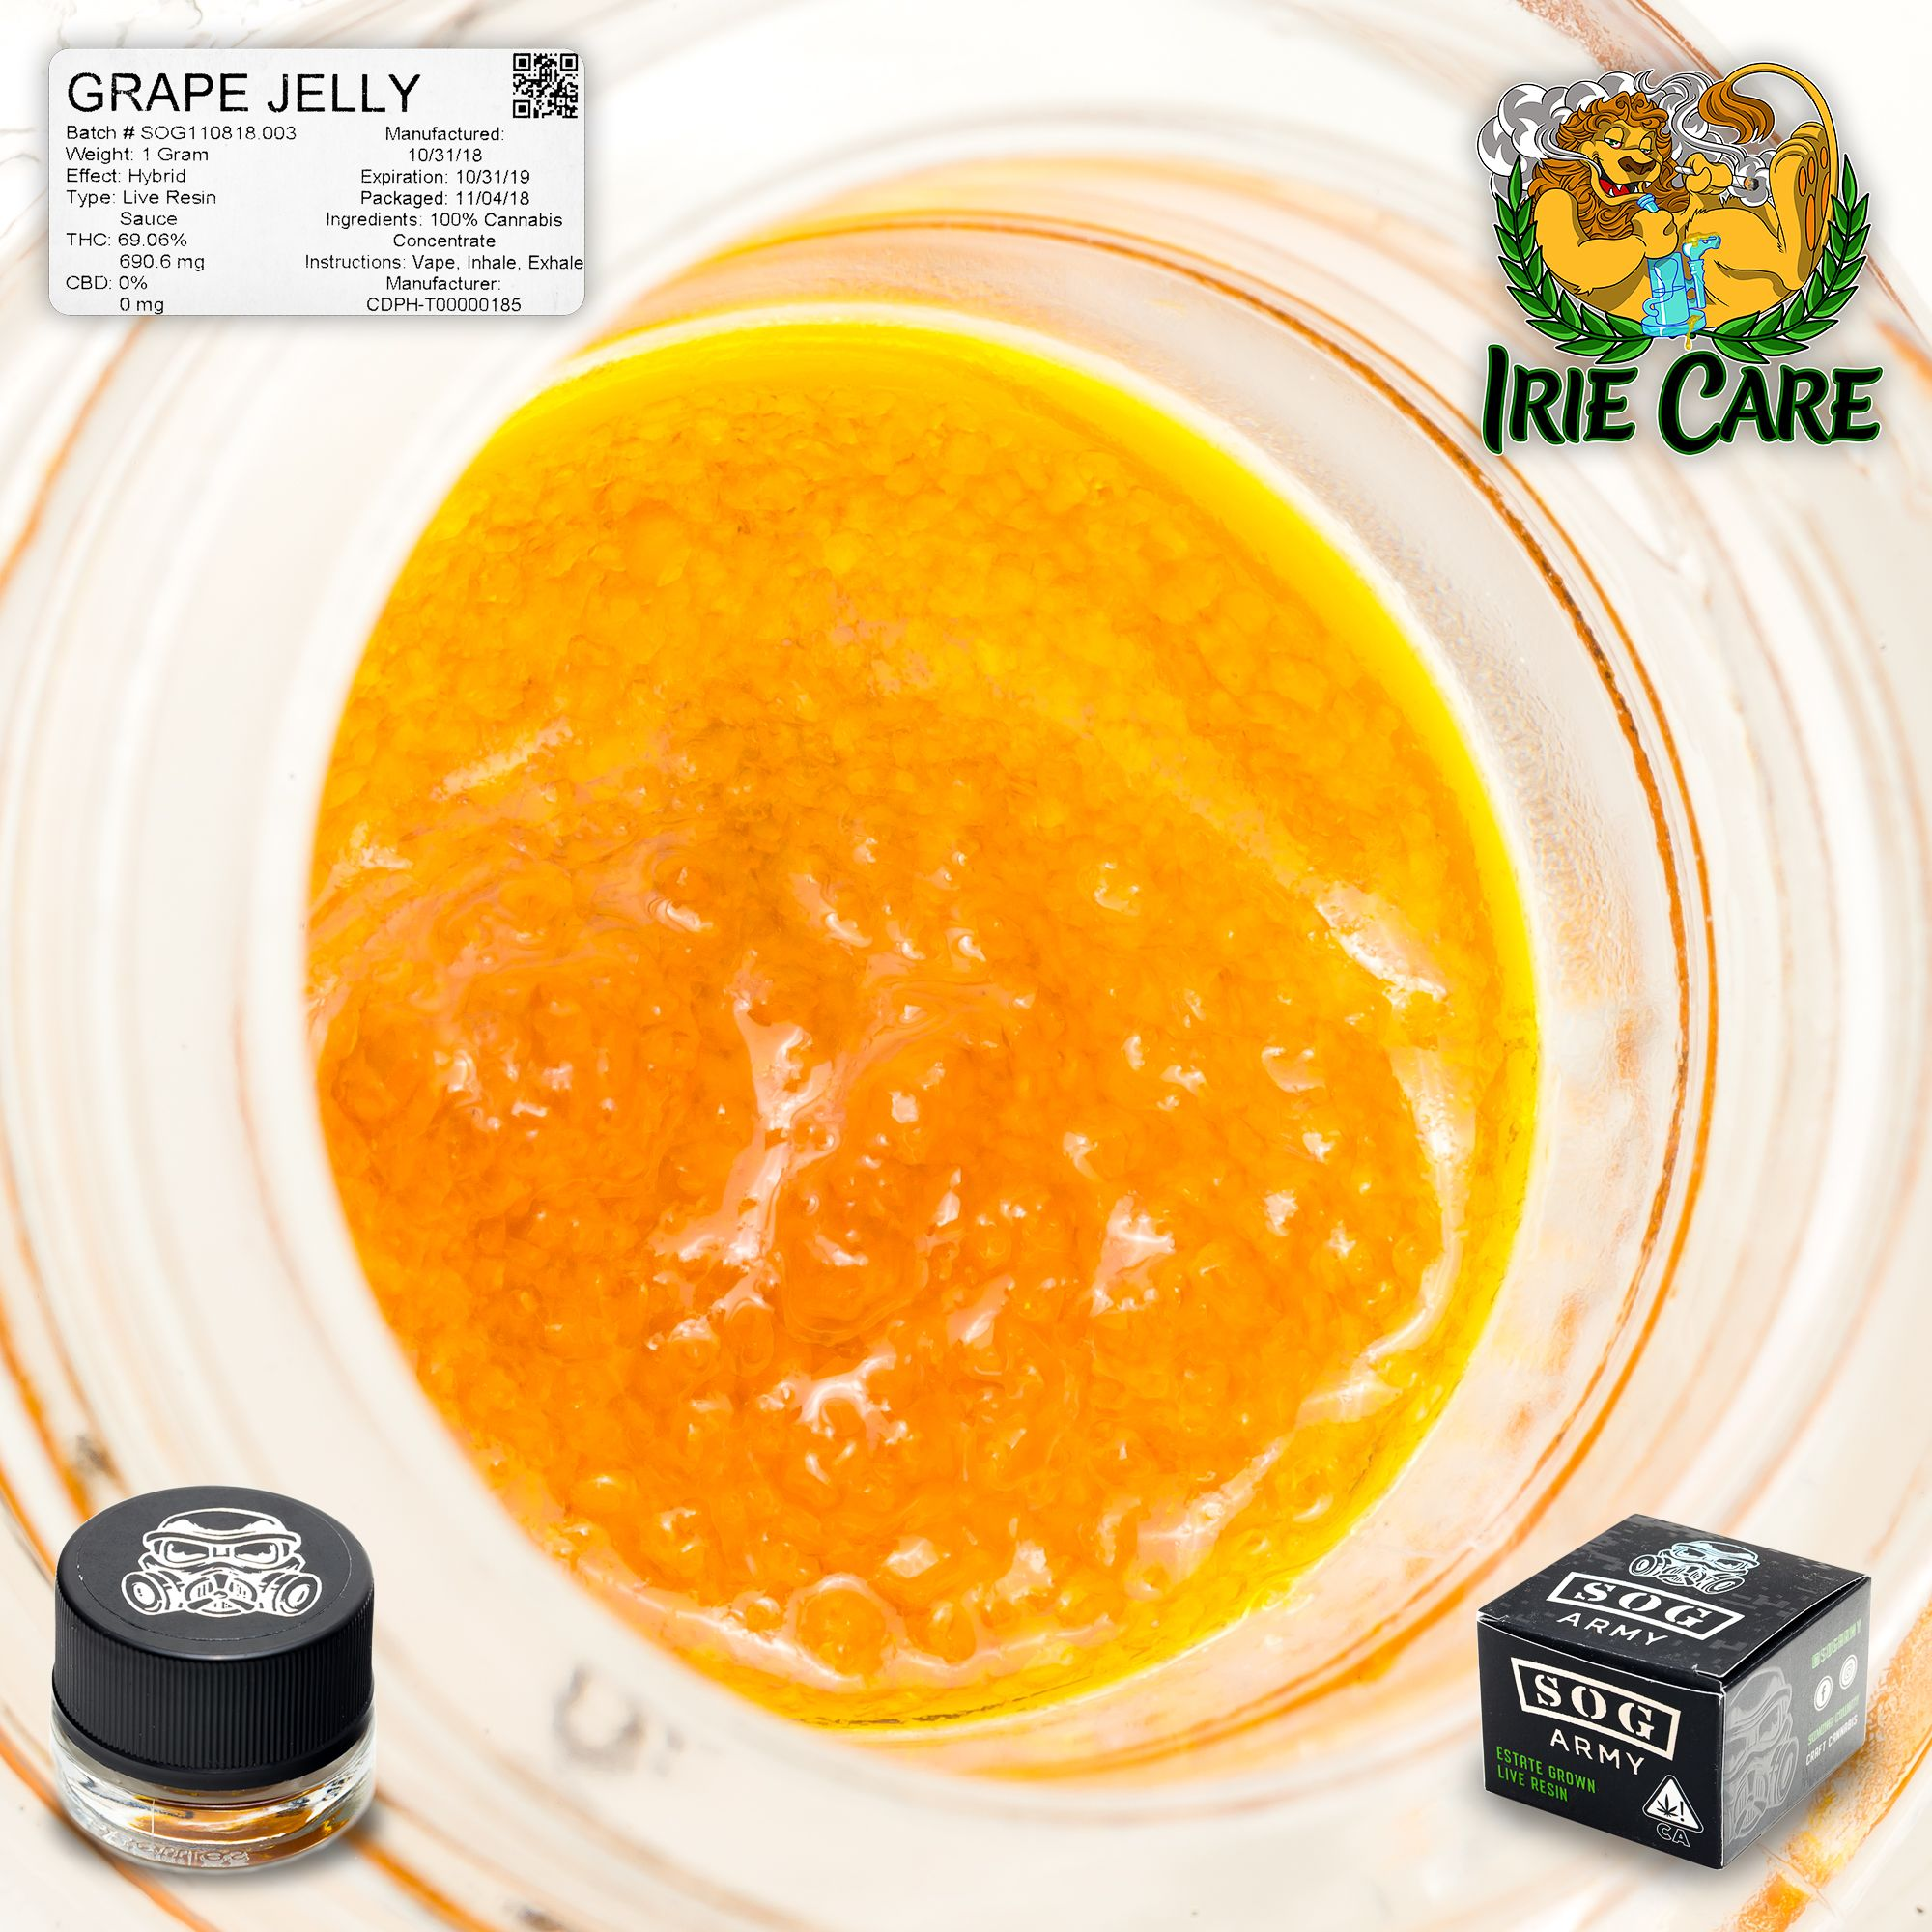 SOG Army - Grape Jelly *Live Resin Sauce*